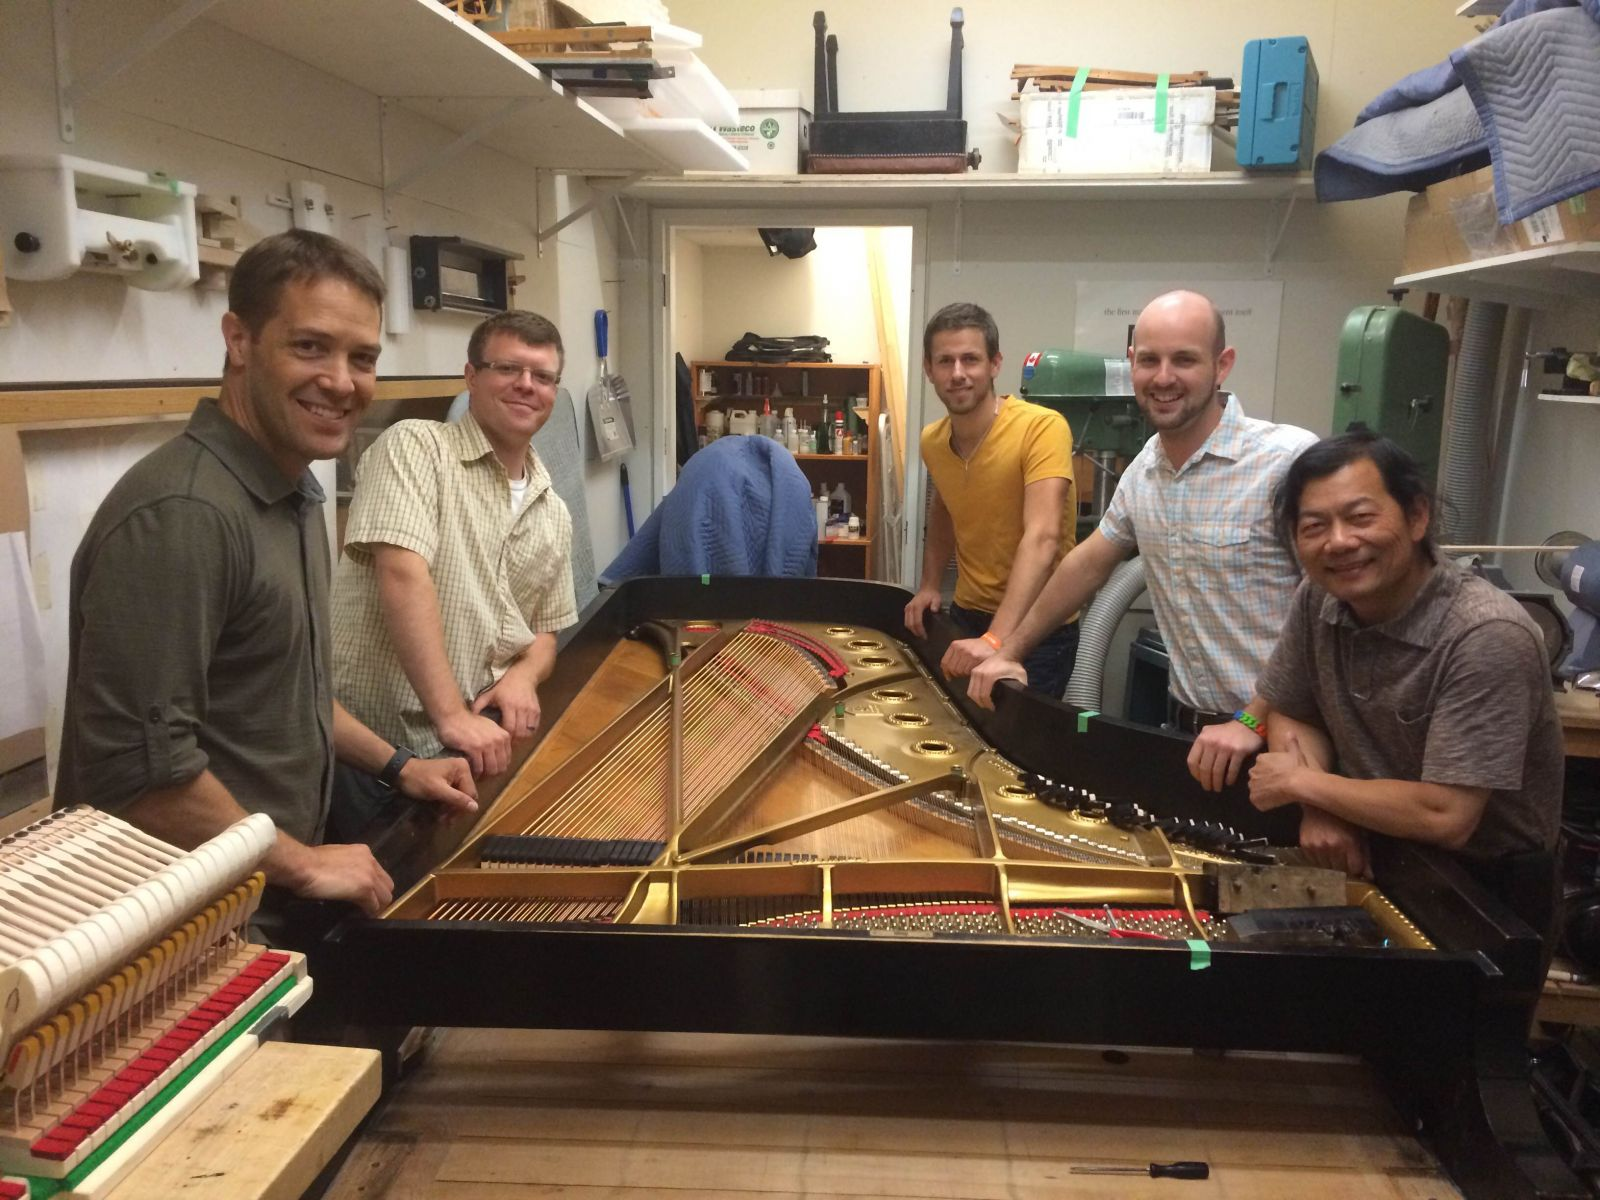 Dan Mackay, Damon Groves, Koen Tholhuijsen, James Bainbridge, Cheng Huang